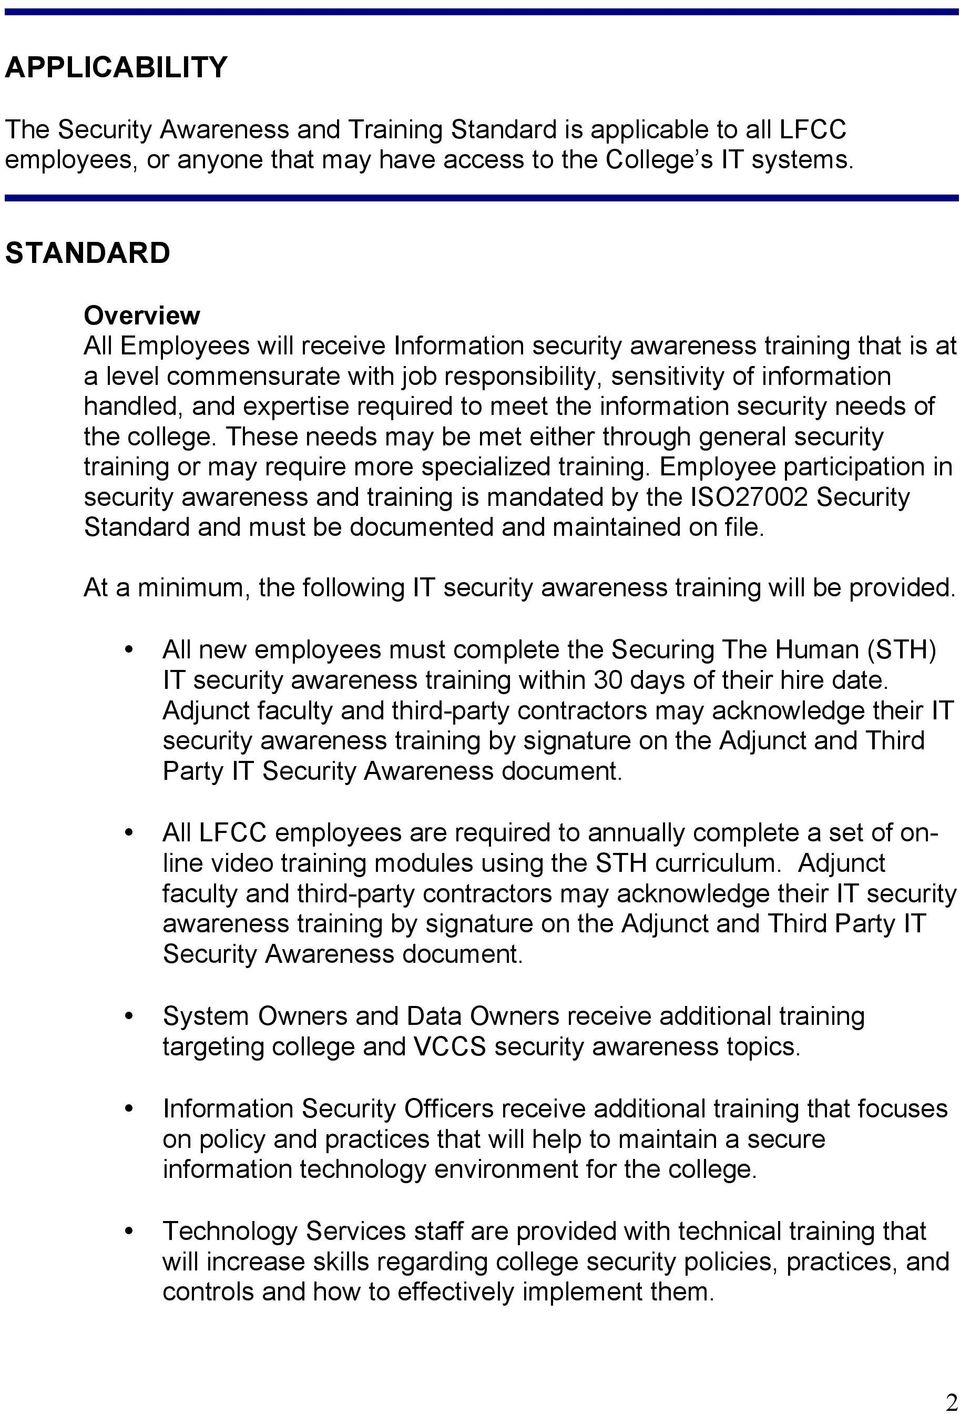 required to meet the information security needs of the college. These needs may be met either through general security training or may require more specialized training.